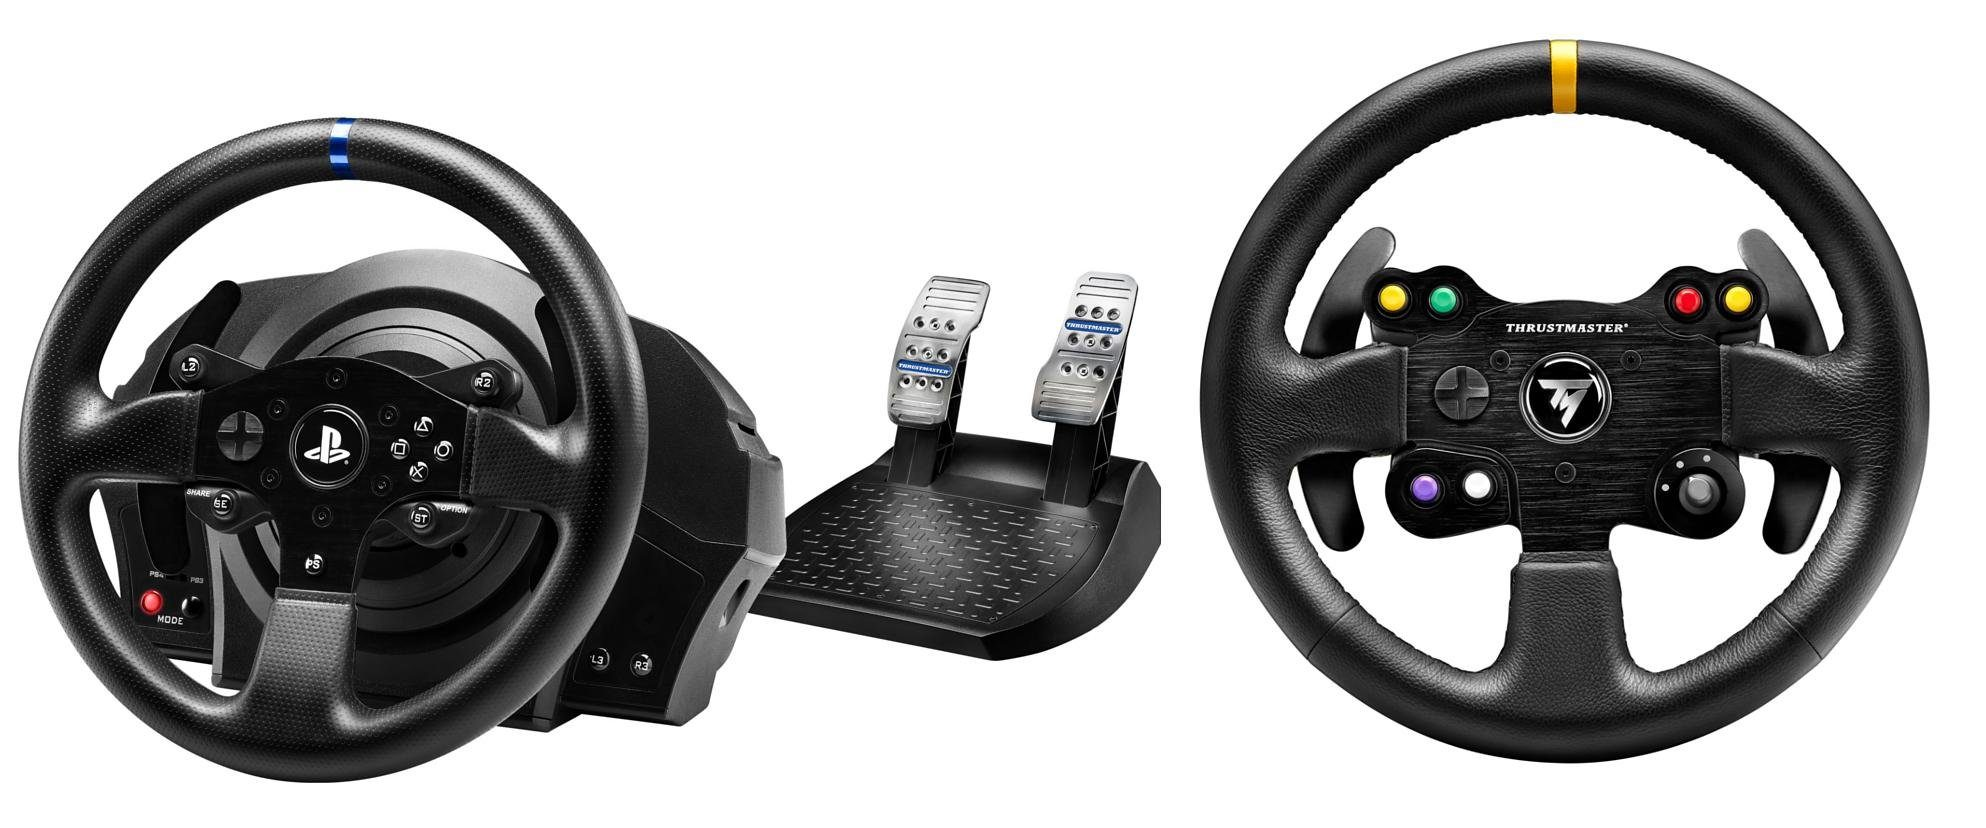 Thrustmaster Lenkrad TM T300 RS inklusive Wheel Add-On 28 cm GT-Leder Lenkrad »PS4 PC«